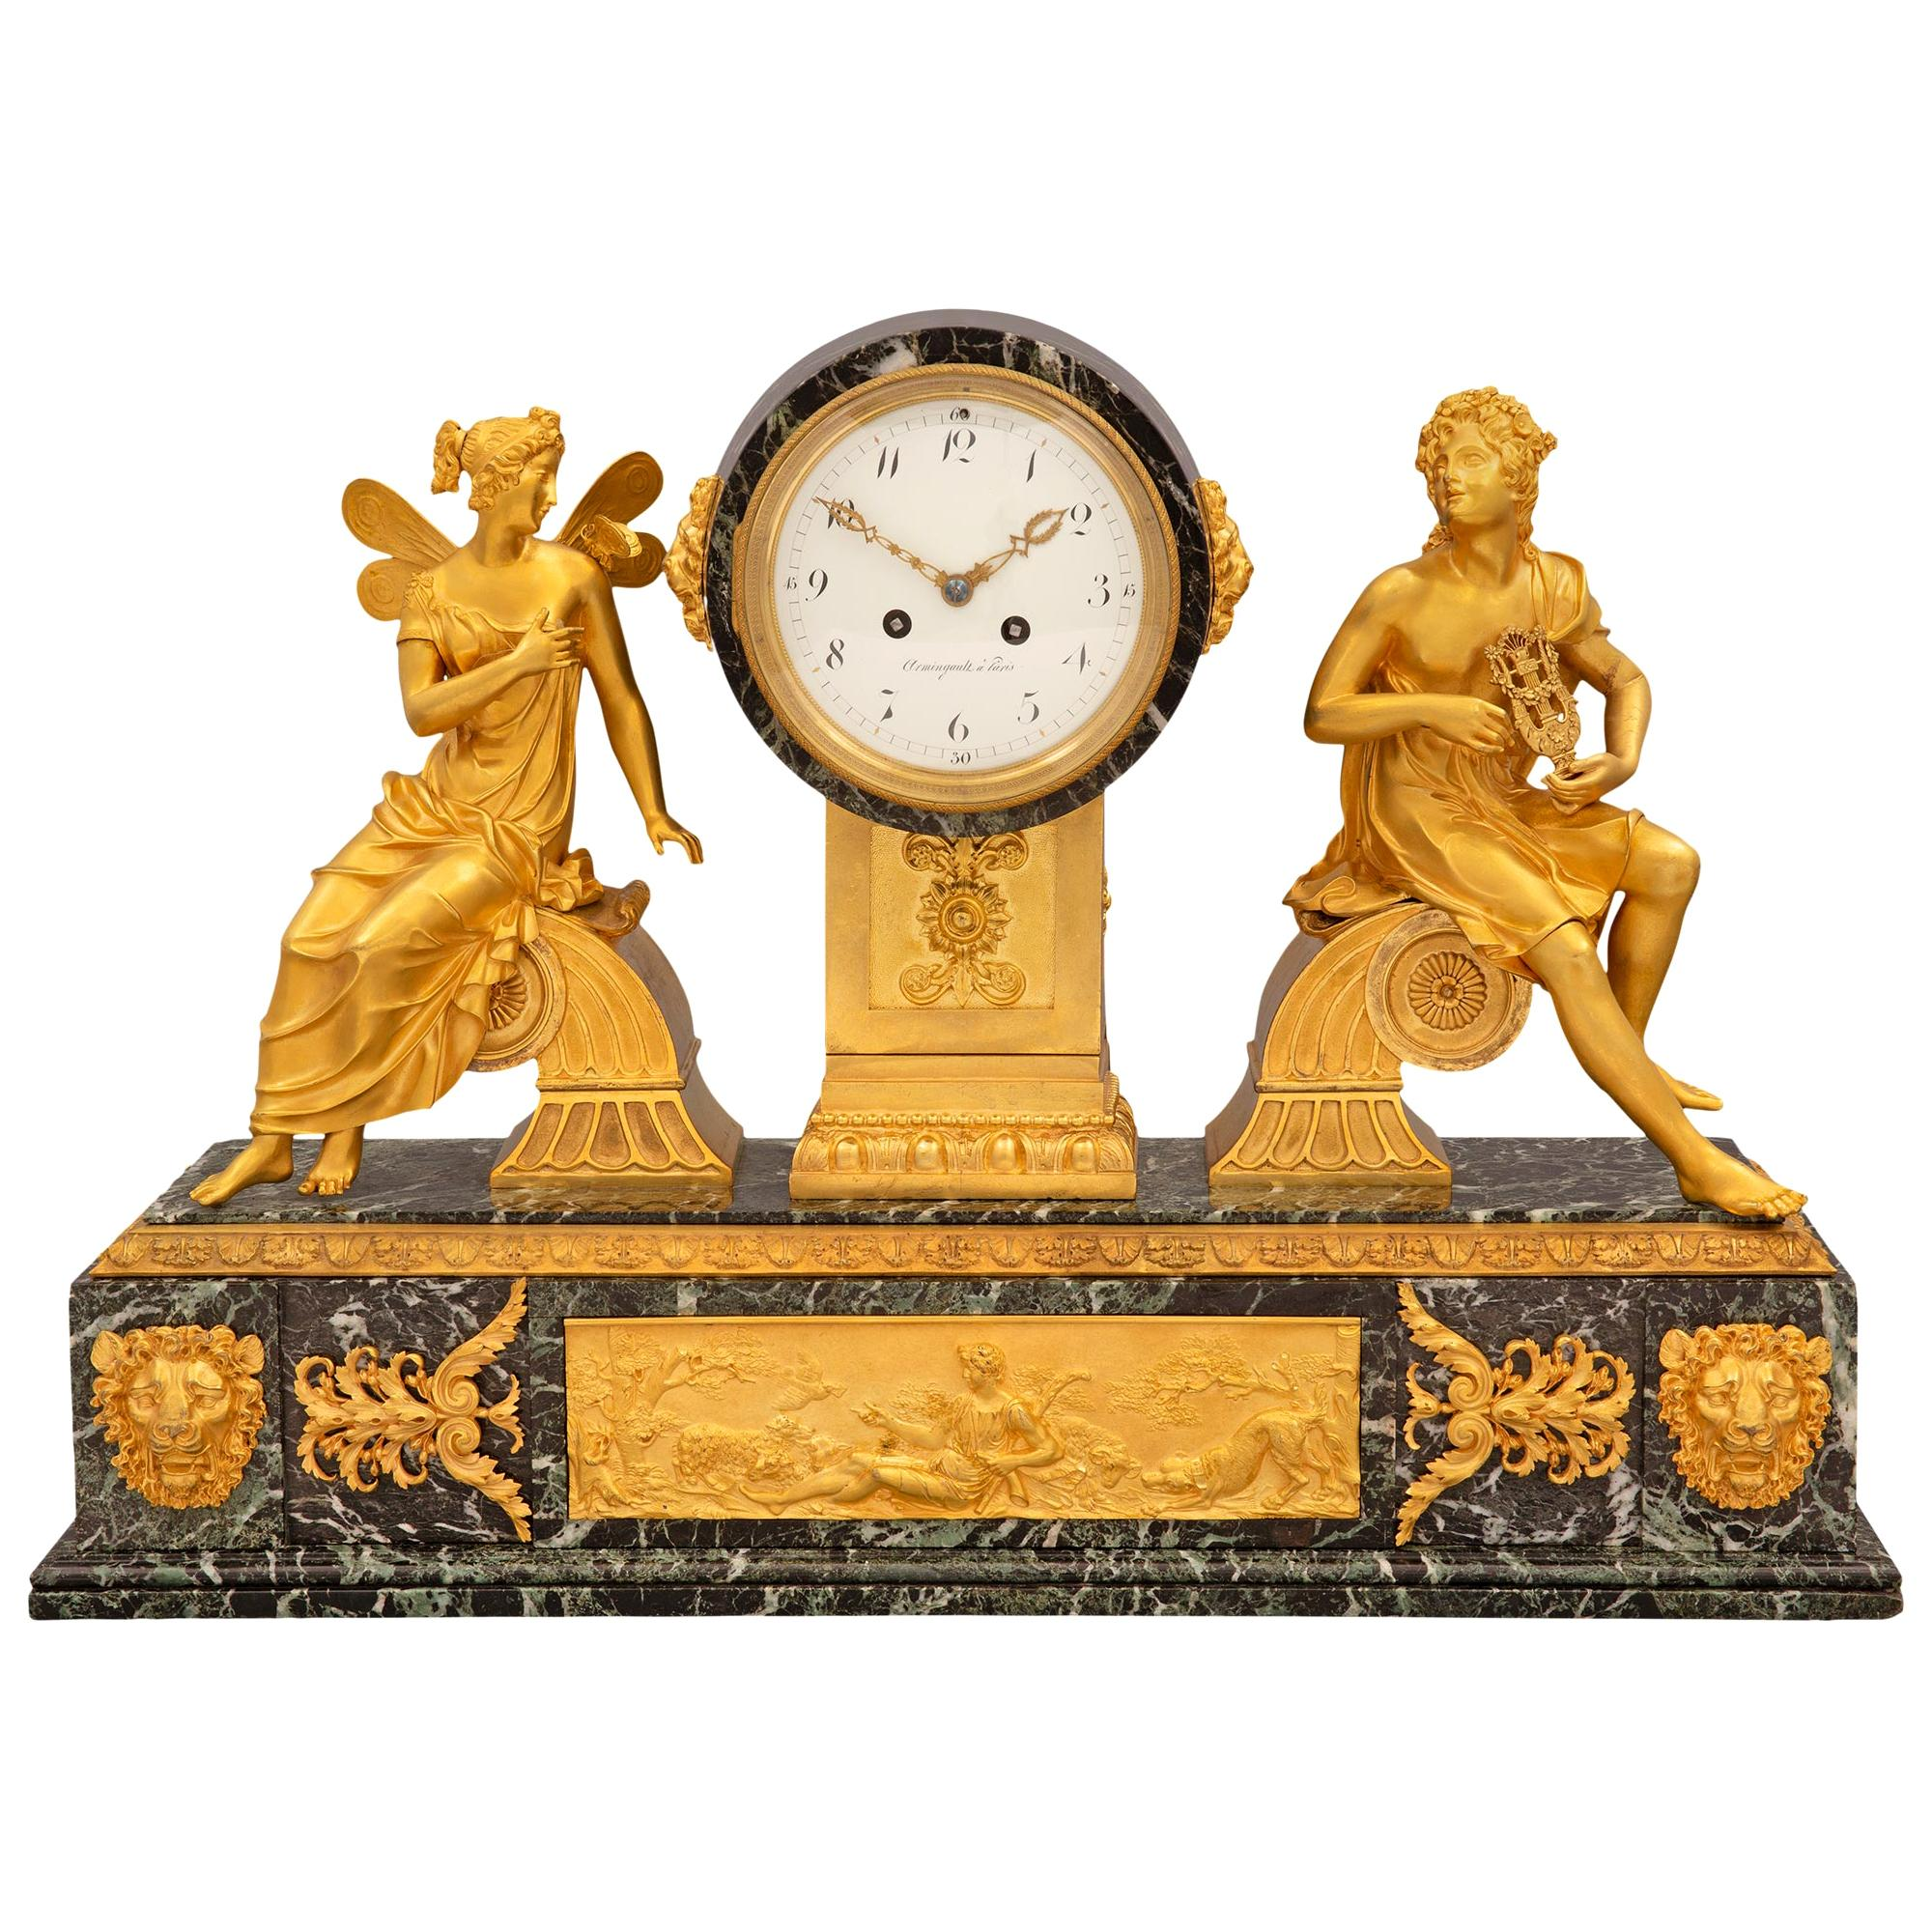 French 19th Century Empire Style Ormolu and Vert Patricia Marble Clock